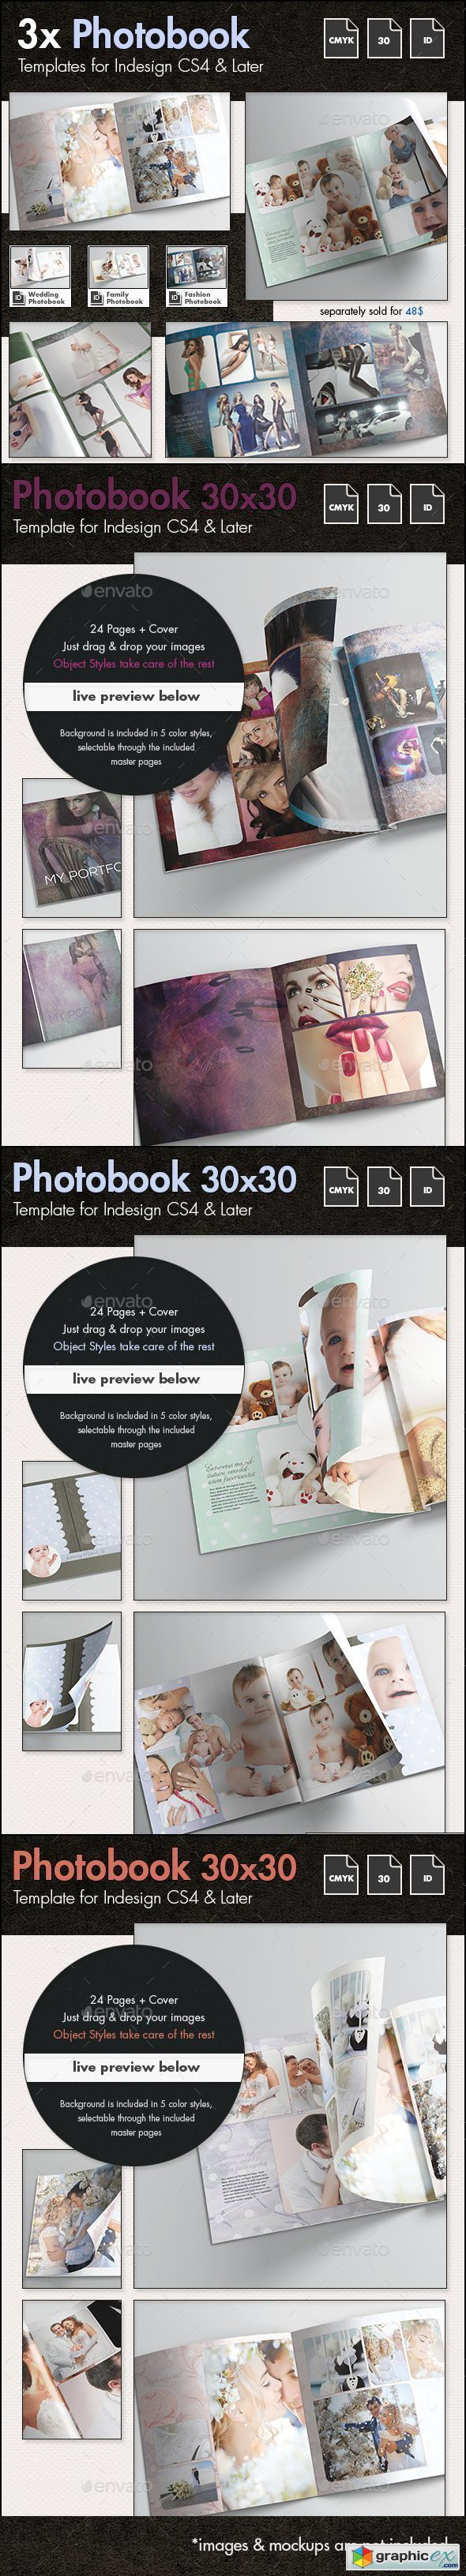 3x Photobook Album Template Bundle